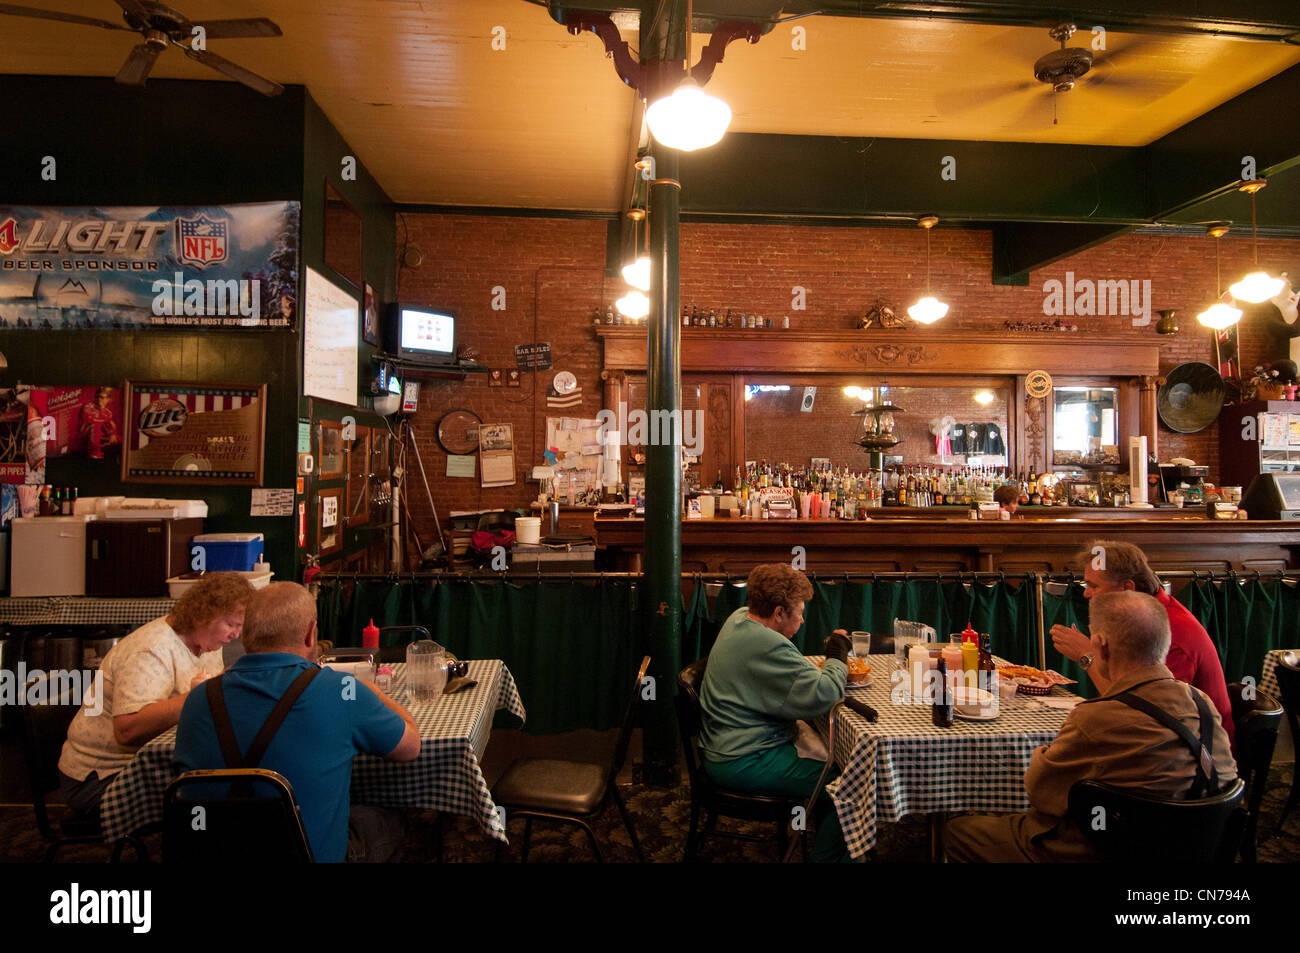 Diners tuck in at Woody's Bar and Grill on Main Street Dayton Washington State - Stock Image